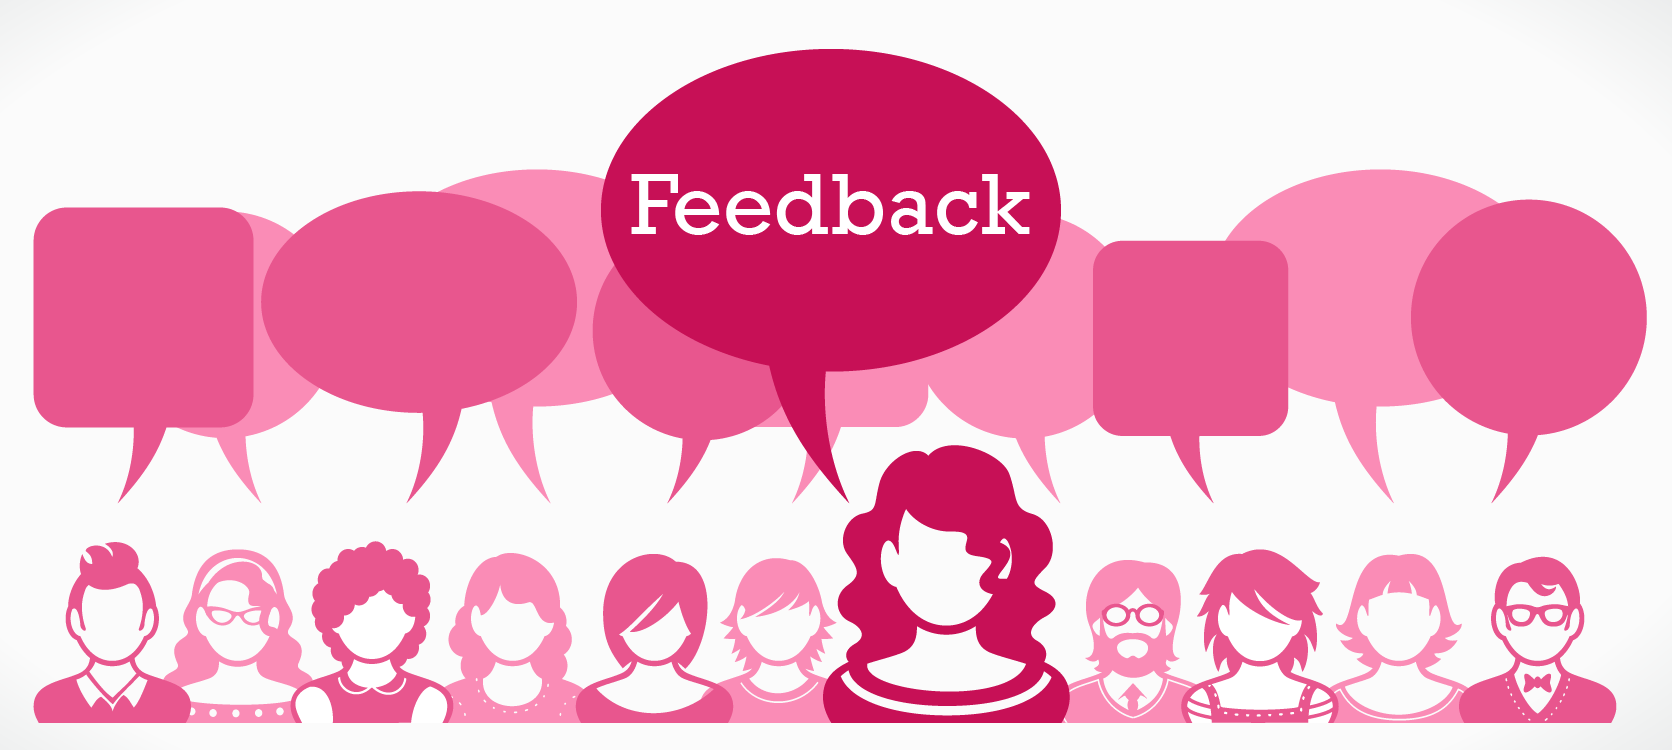 PlusPNG - Feedback PNG